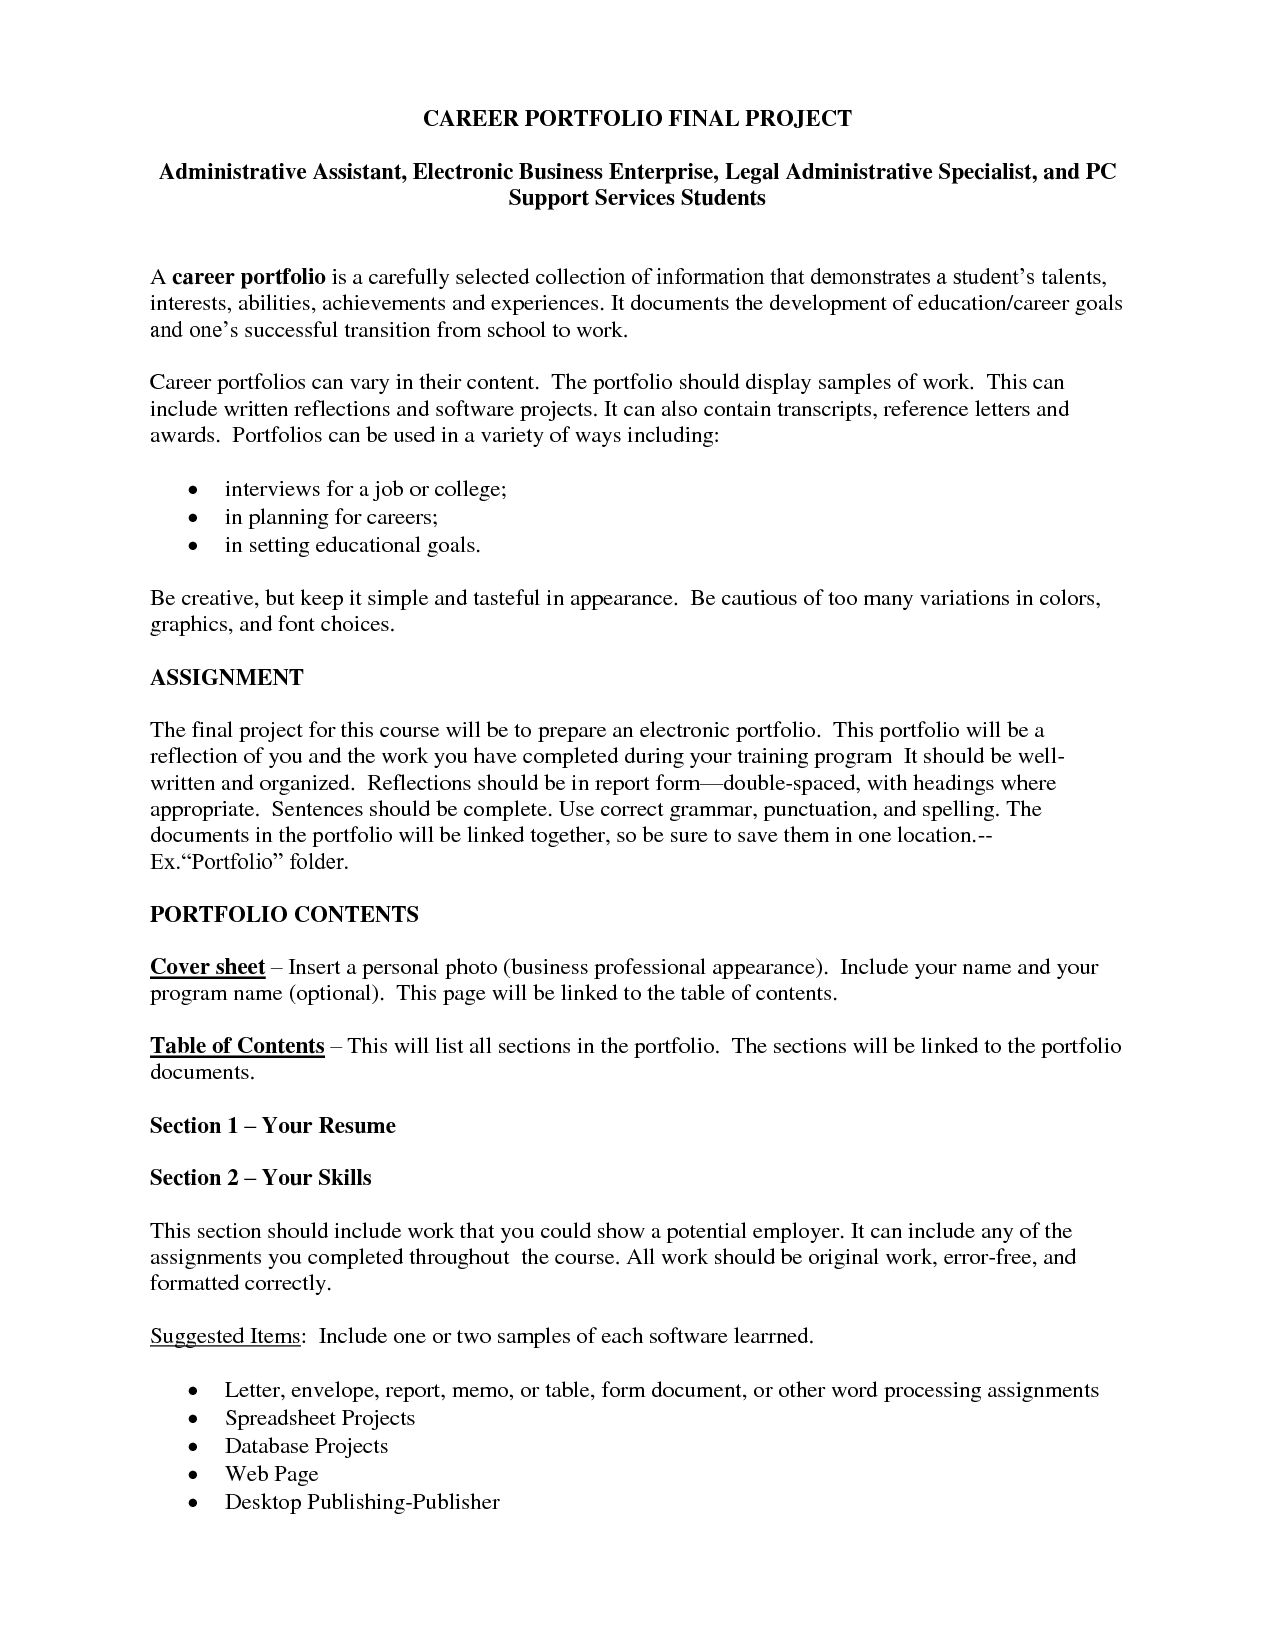 Resume Template For Medical Administrative Assistant